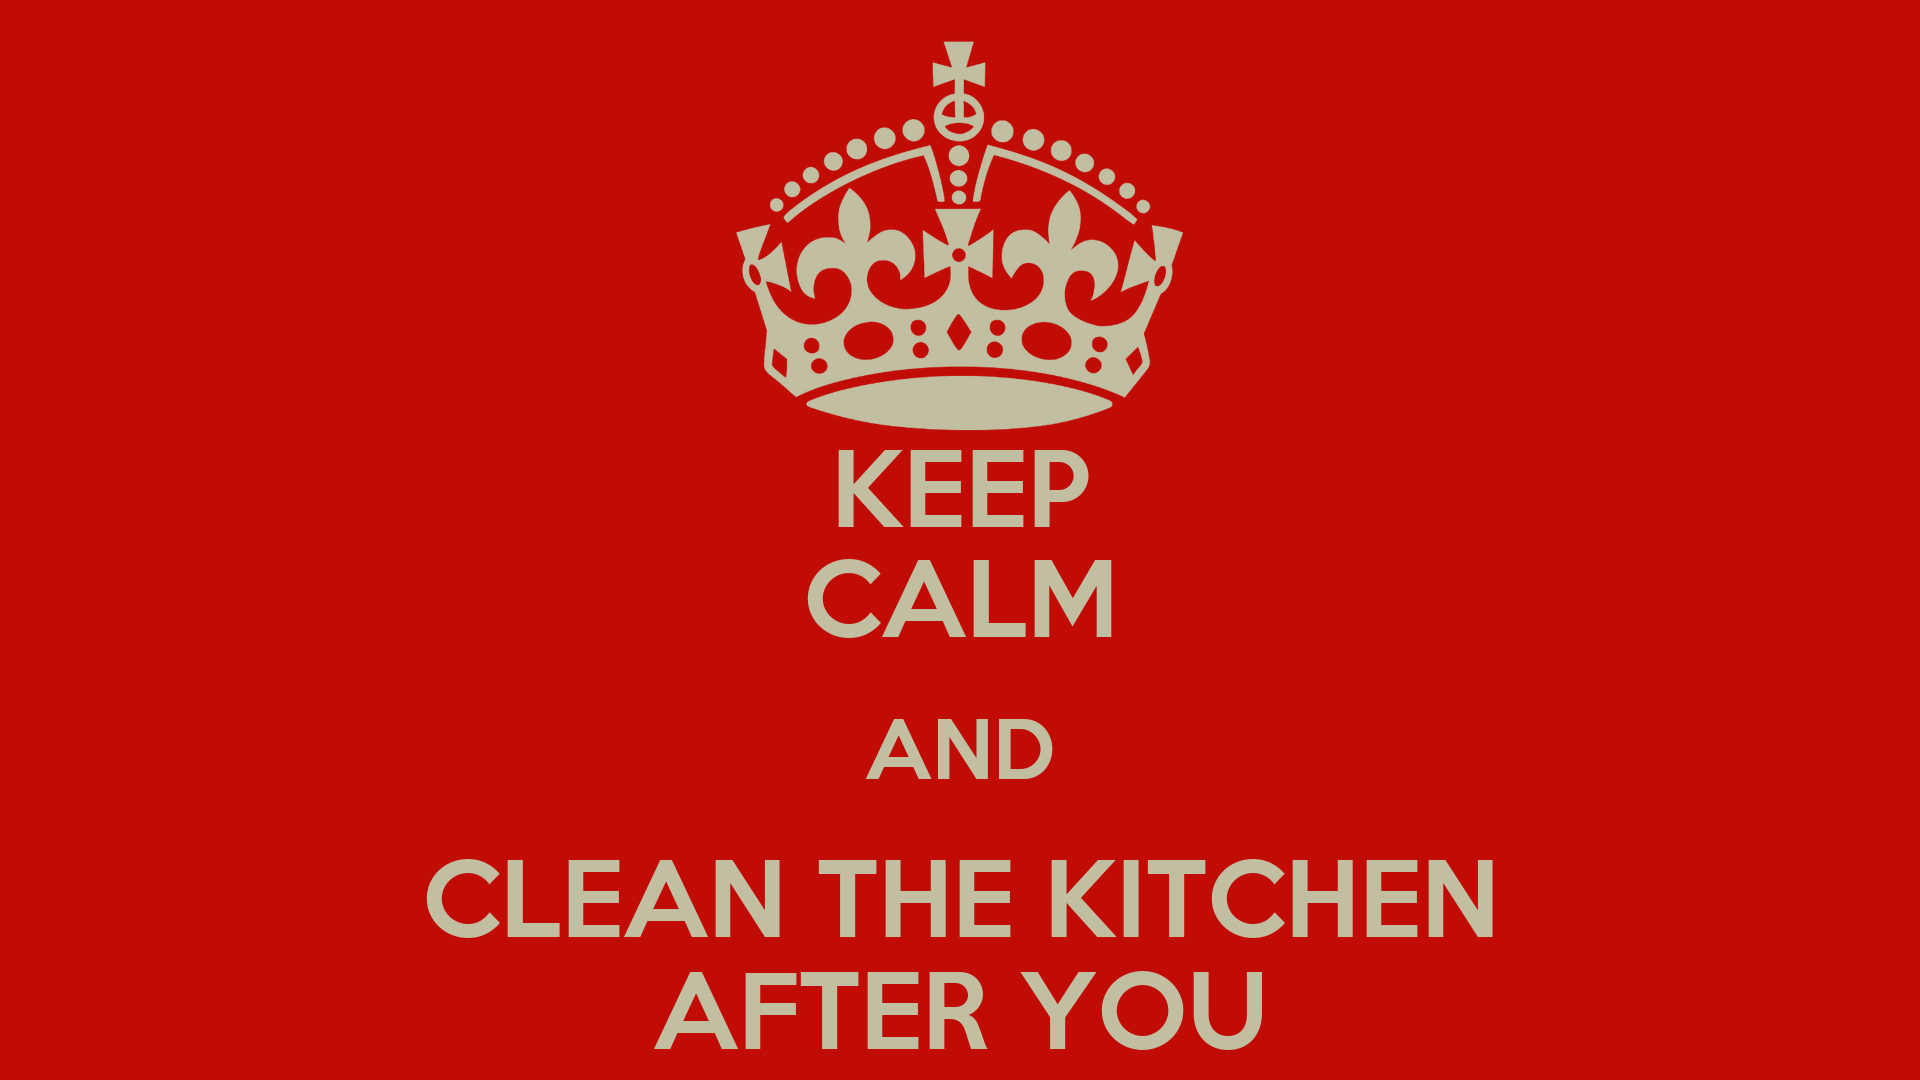 Keep calm and clean the kitchen after you poster jono for How to keep the kitchen clean